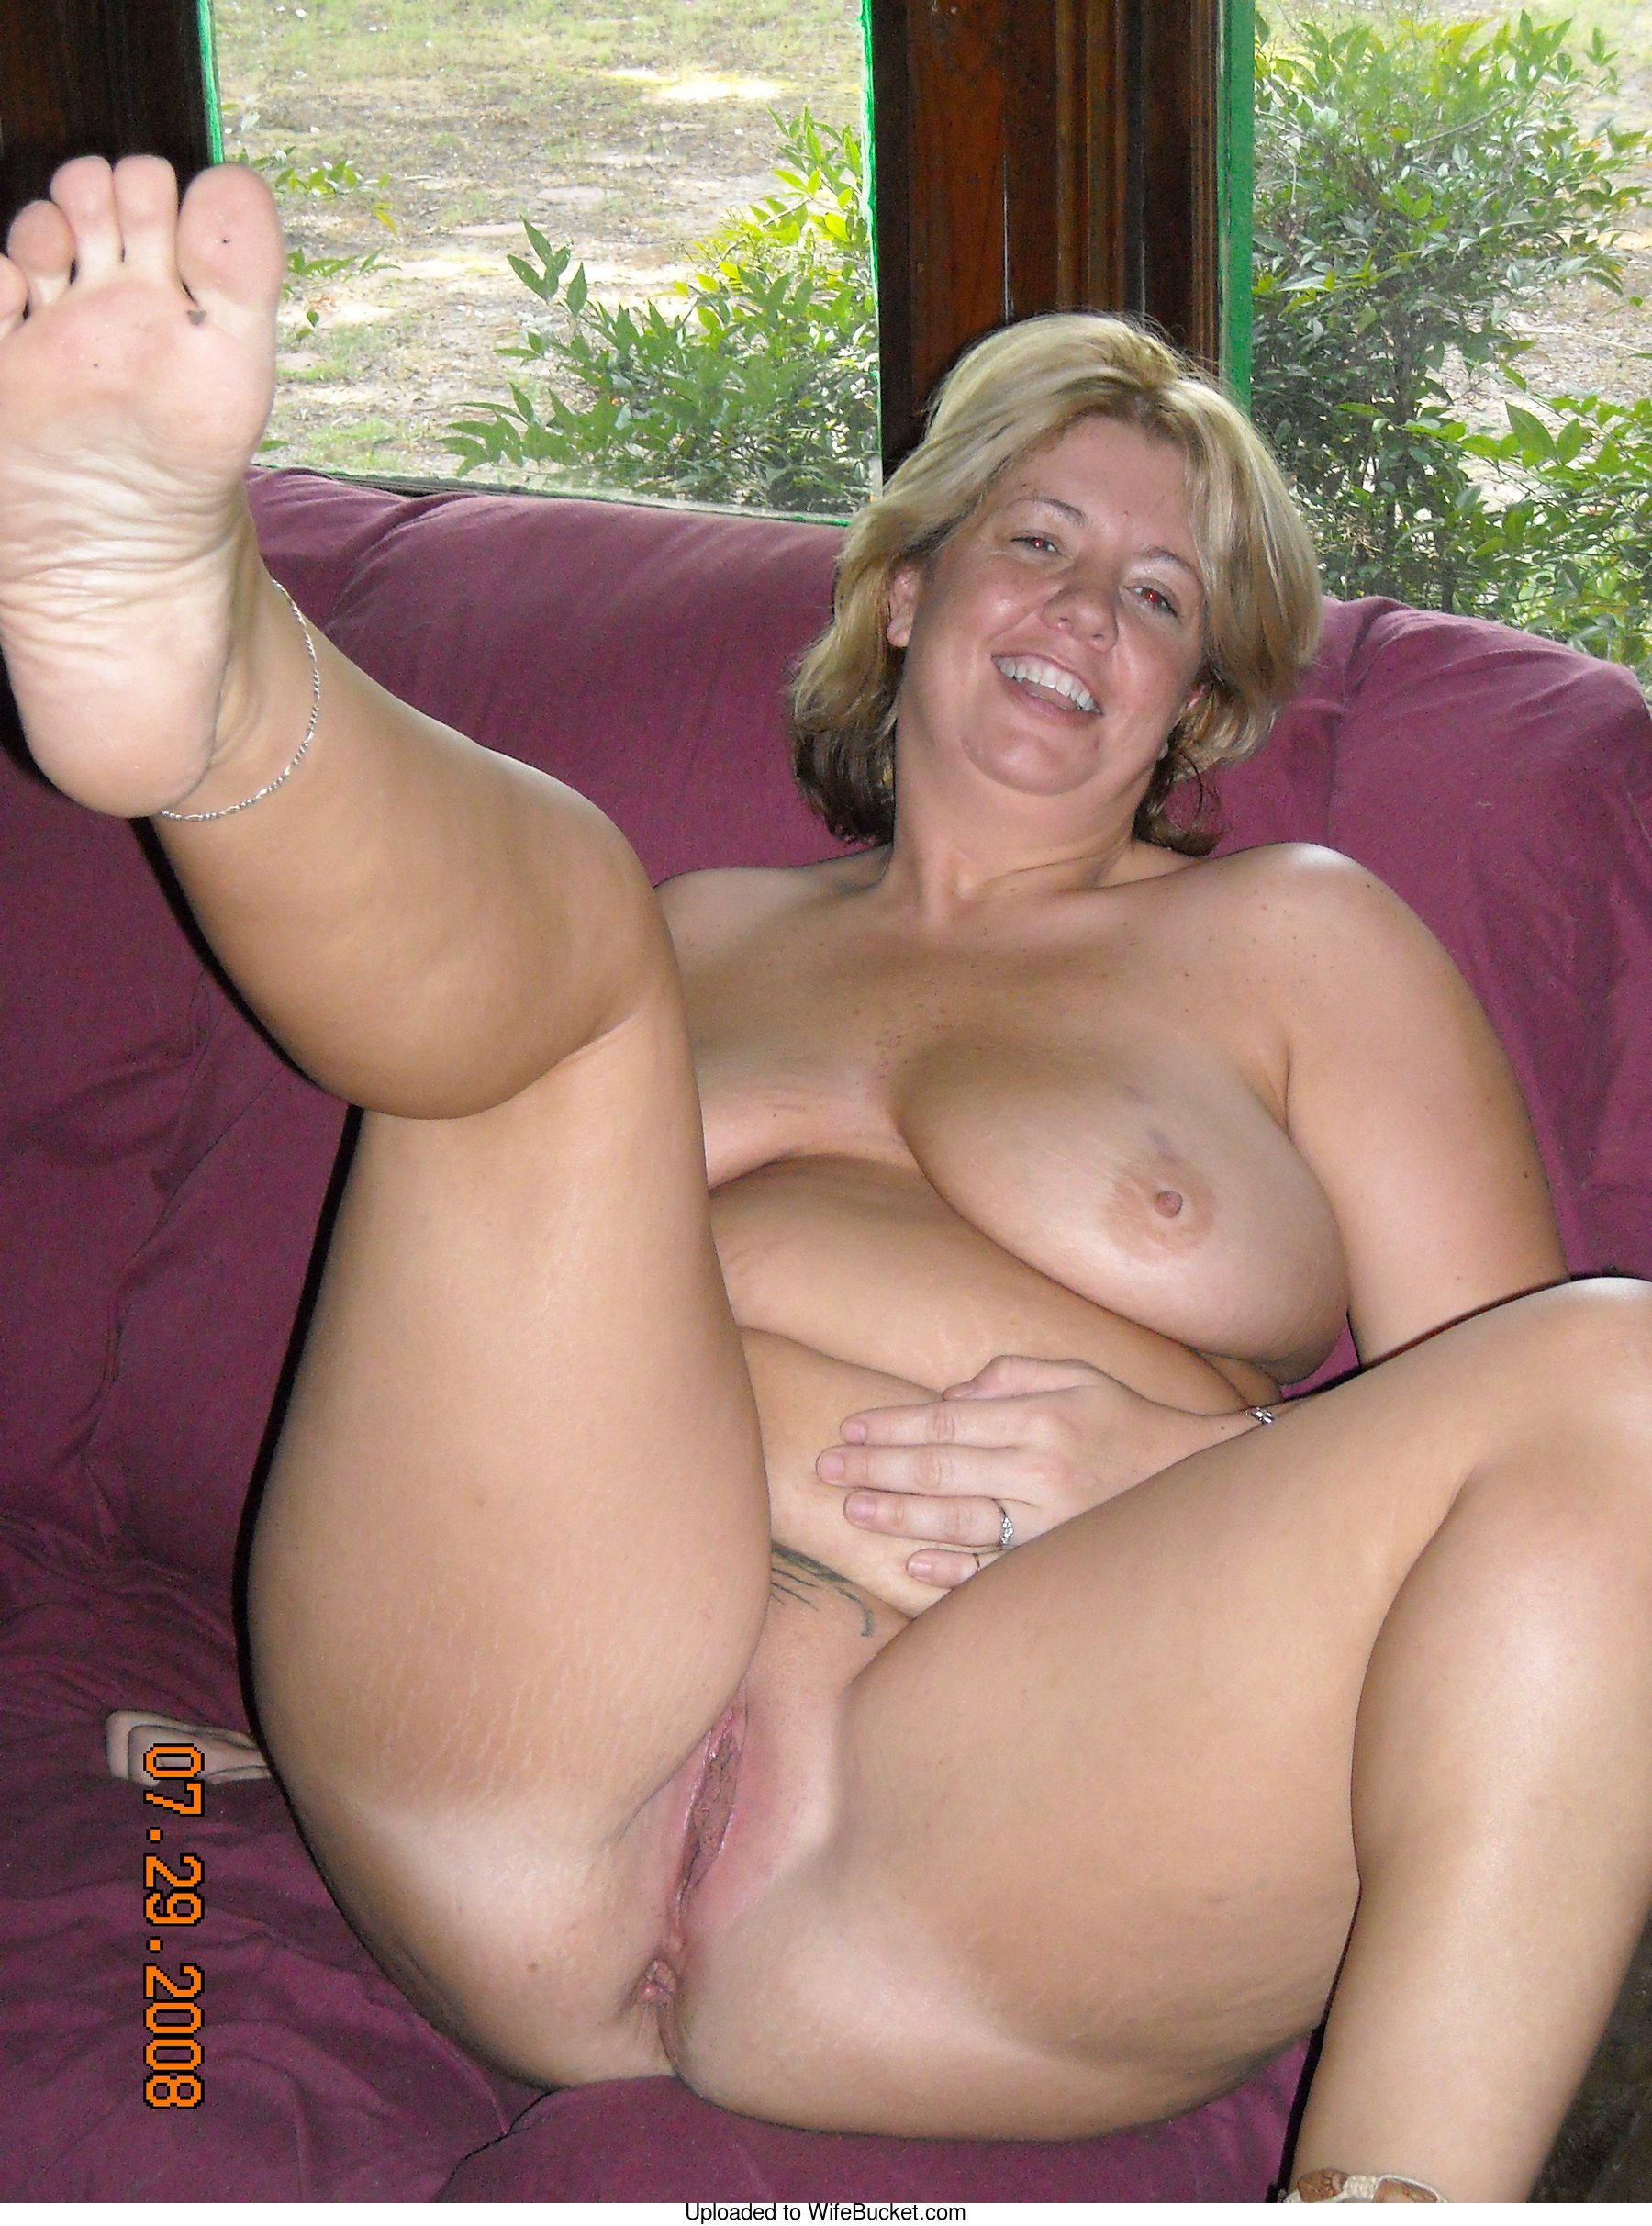 Sally From Montana And 4 More Naked Amateur Wives  Wifebucket  Offical Milf Blog-1781